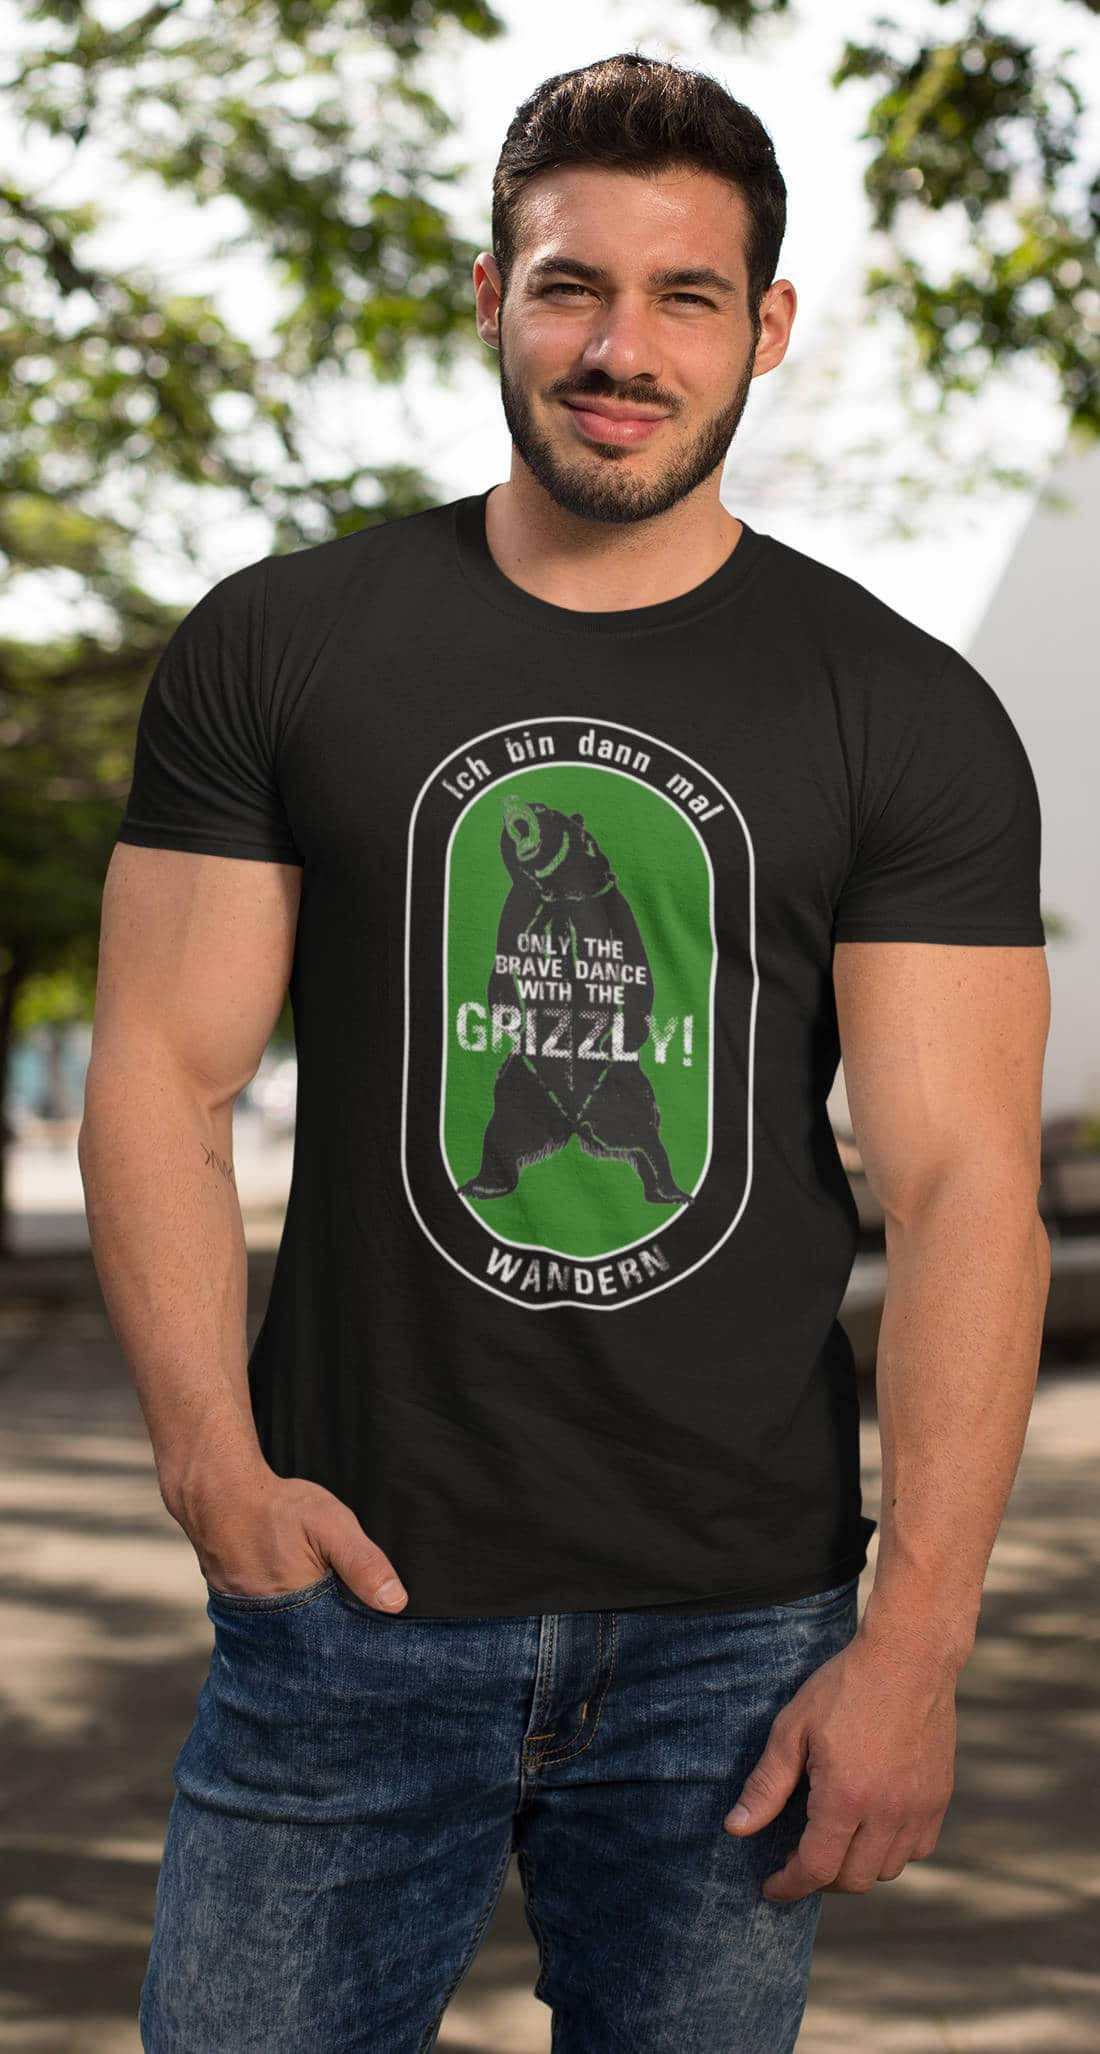 Wandern_T-Shirt_green_Dance with the Grizzly